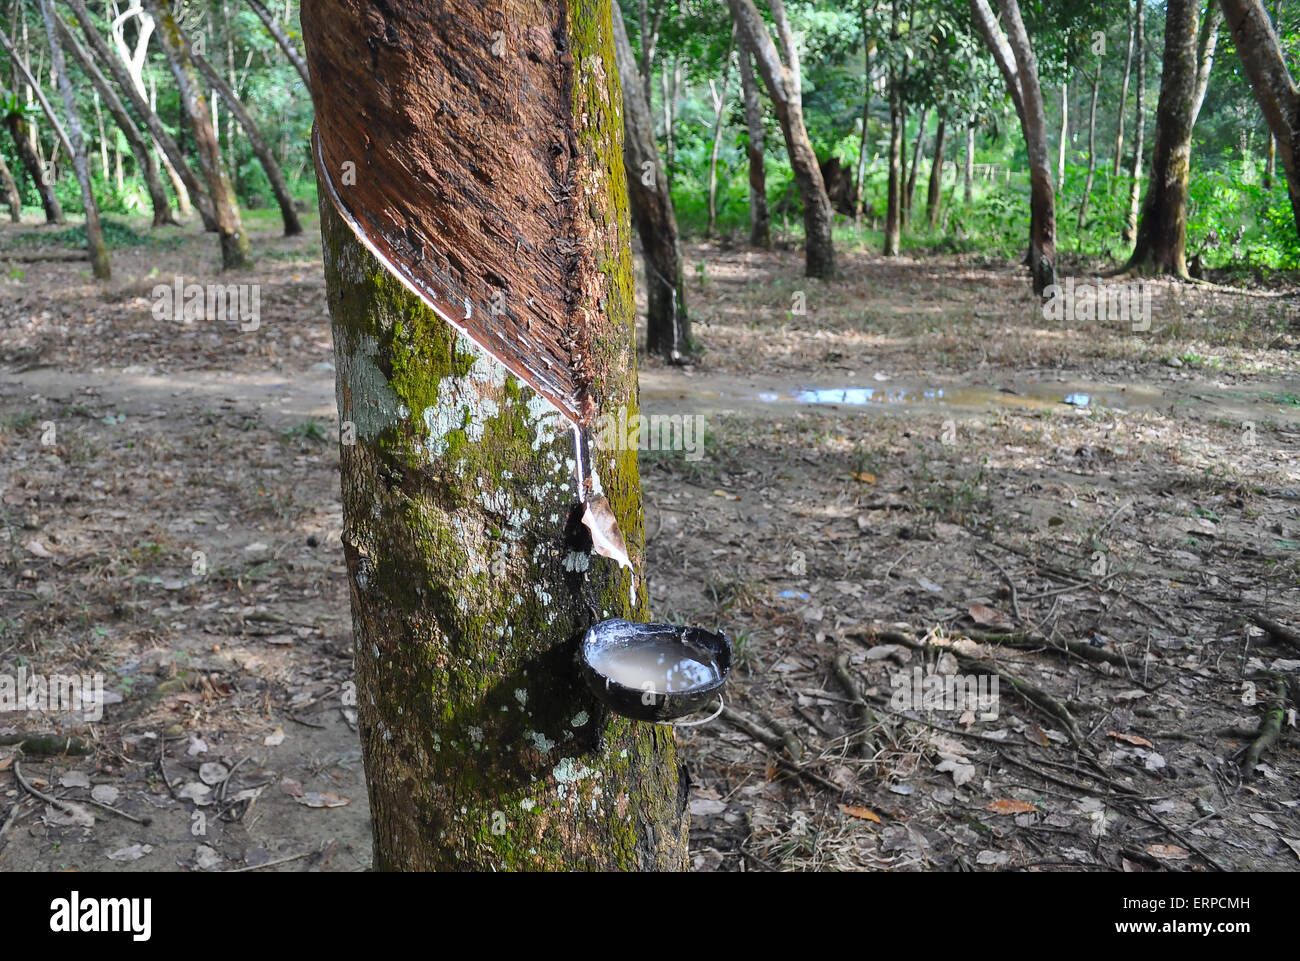 Tapping latex from a rubber tree. Bukit Lawang. Indonesia Stock Photo